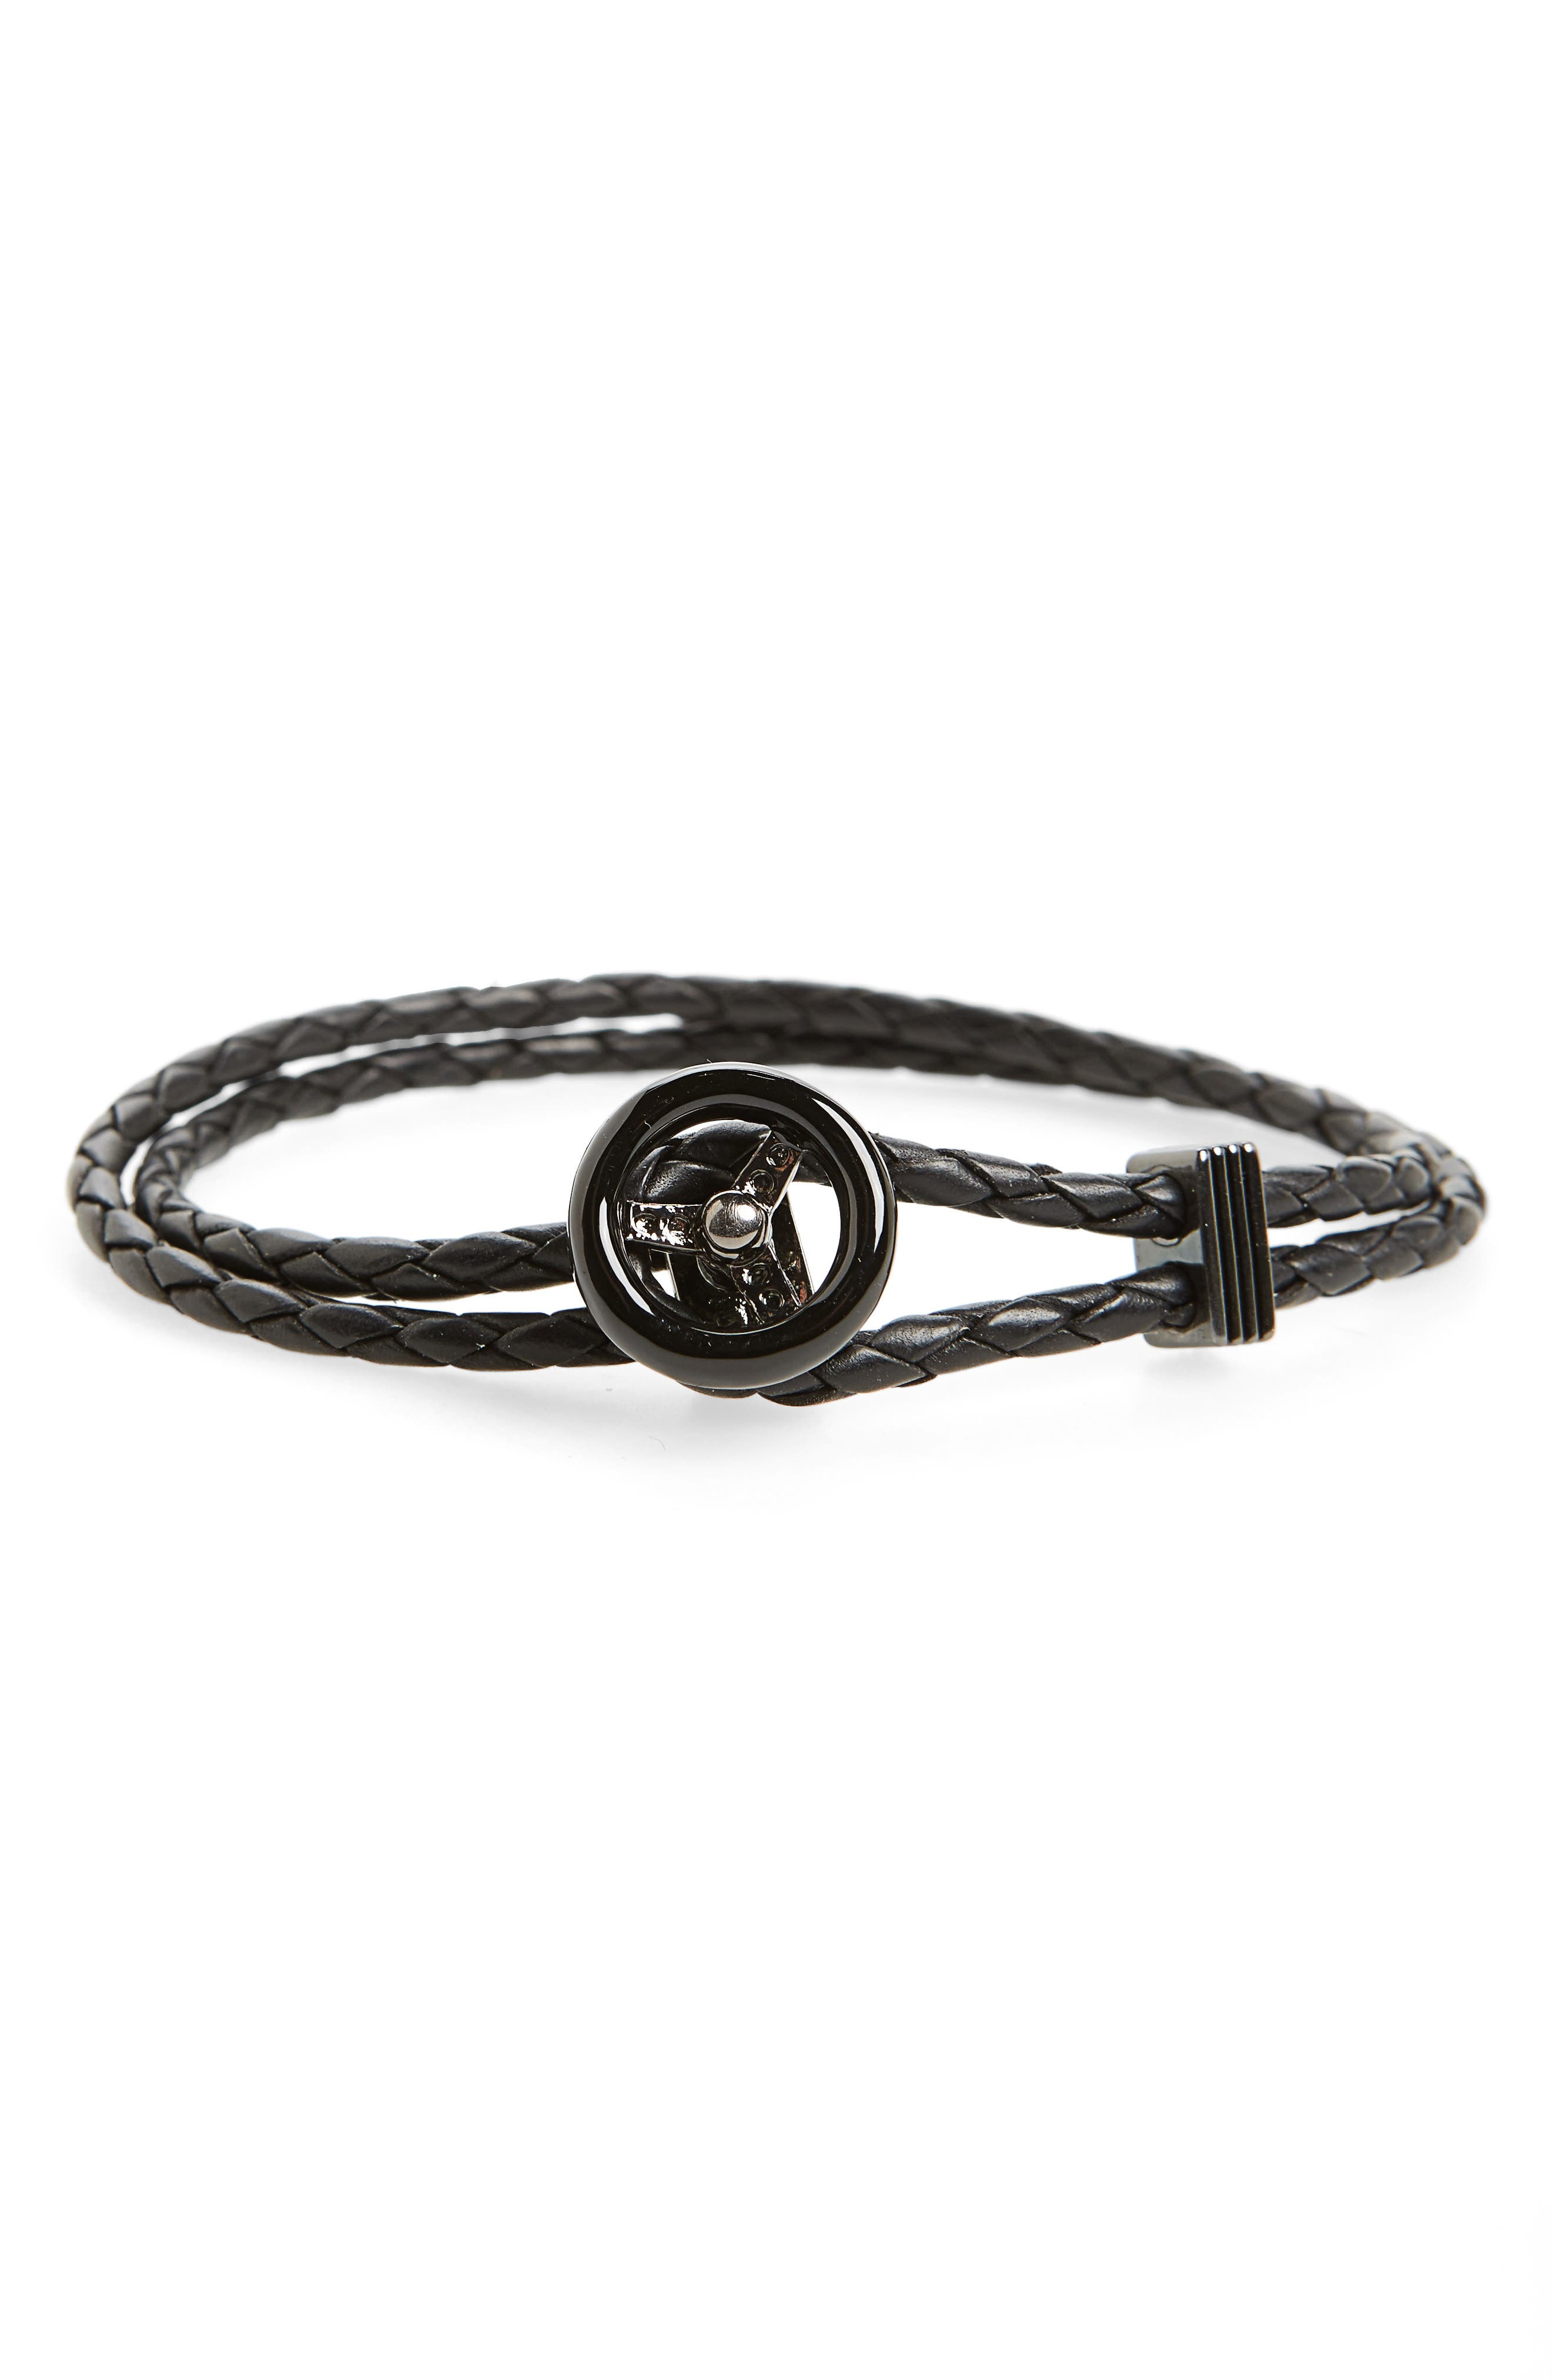 Steering Wheel Braided Leather Bracelet,                             Main thumbnail 1, color,                             001